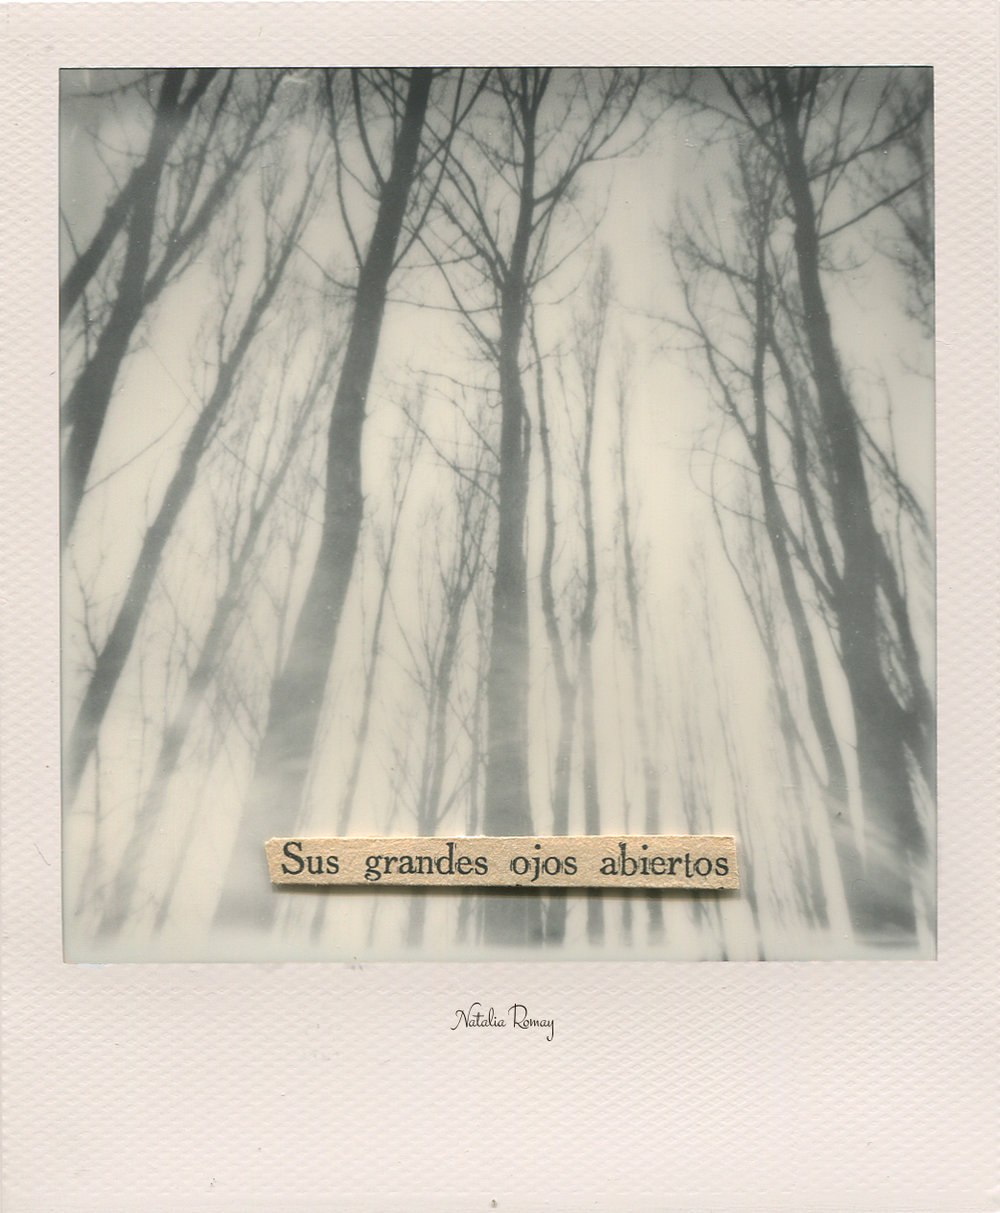 http://polaroidoftheday.com/natalia-romay-a-game-of-chance/